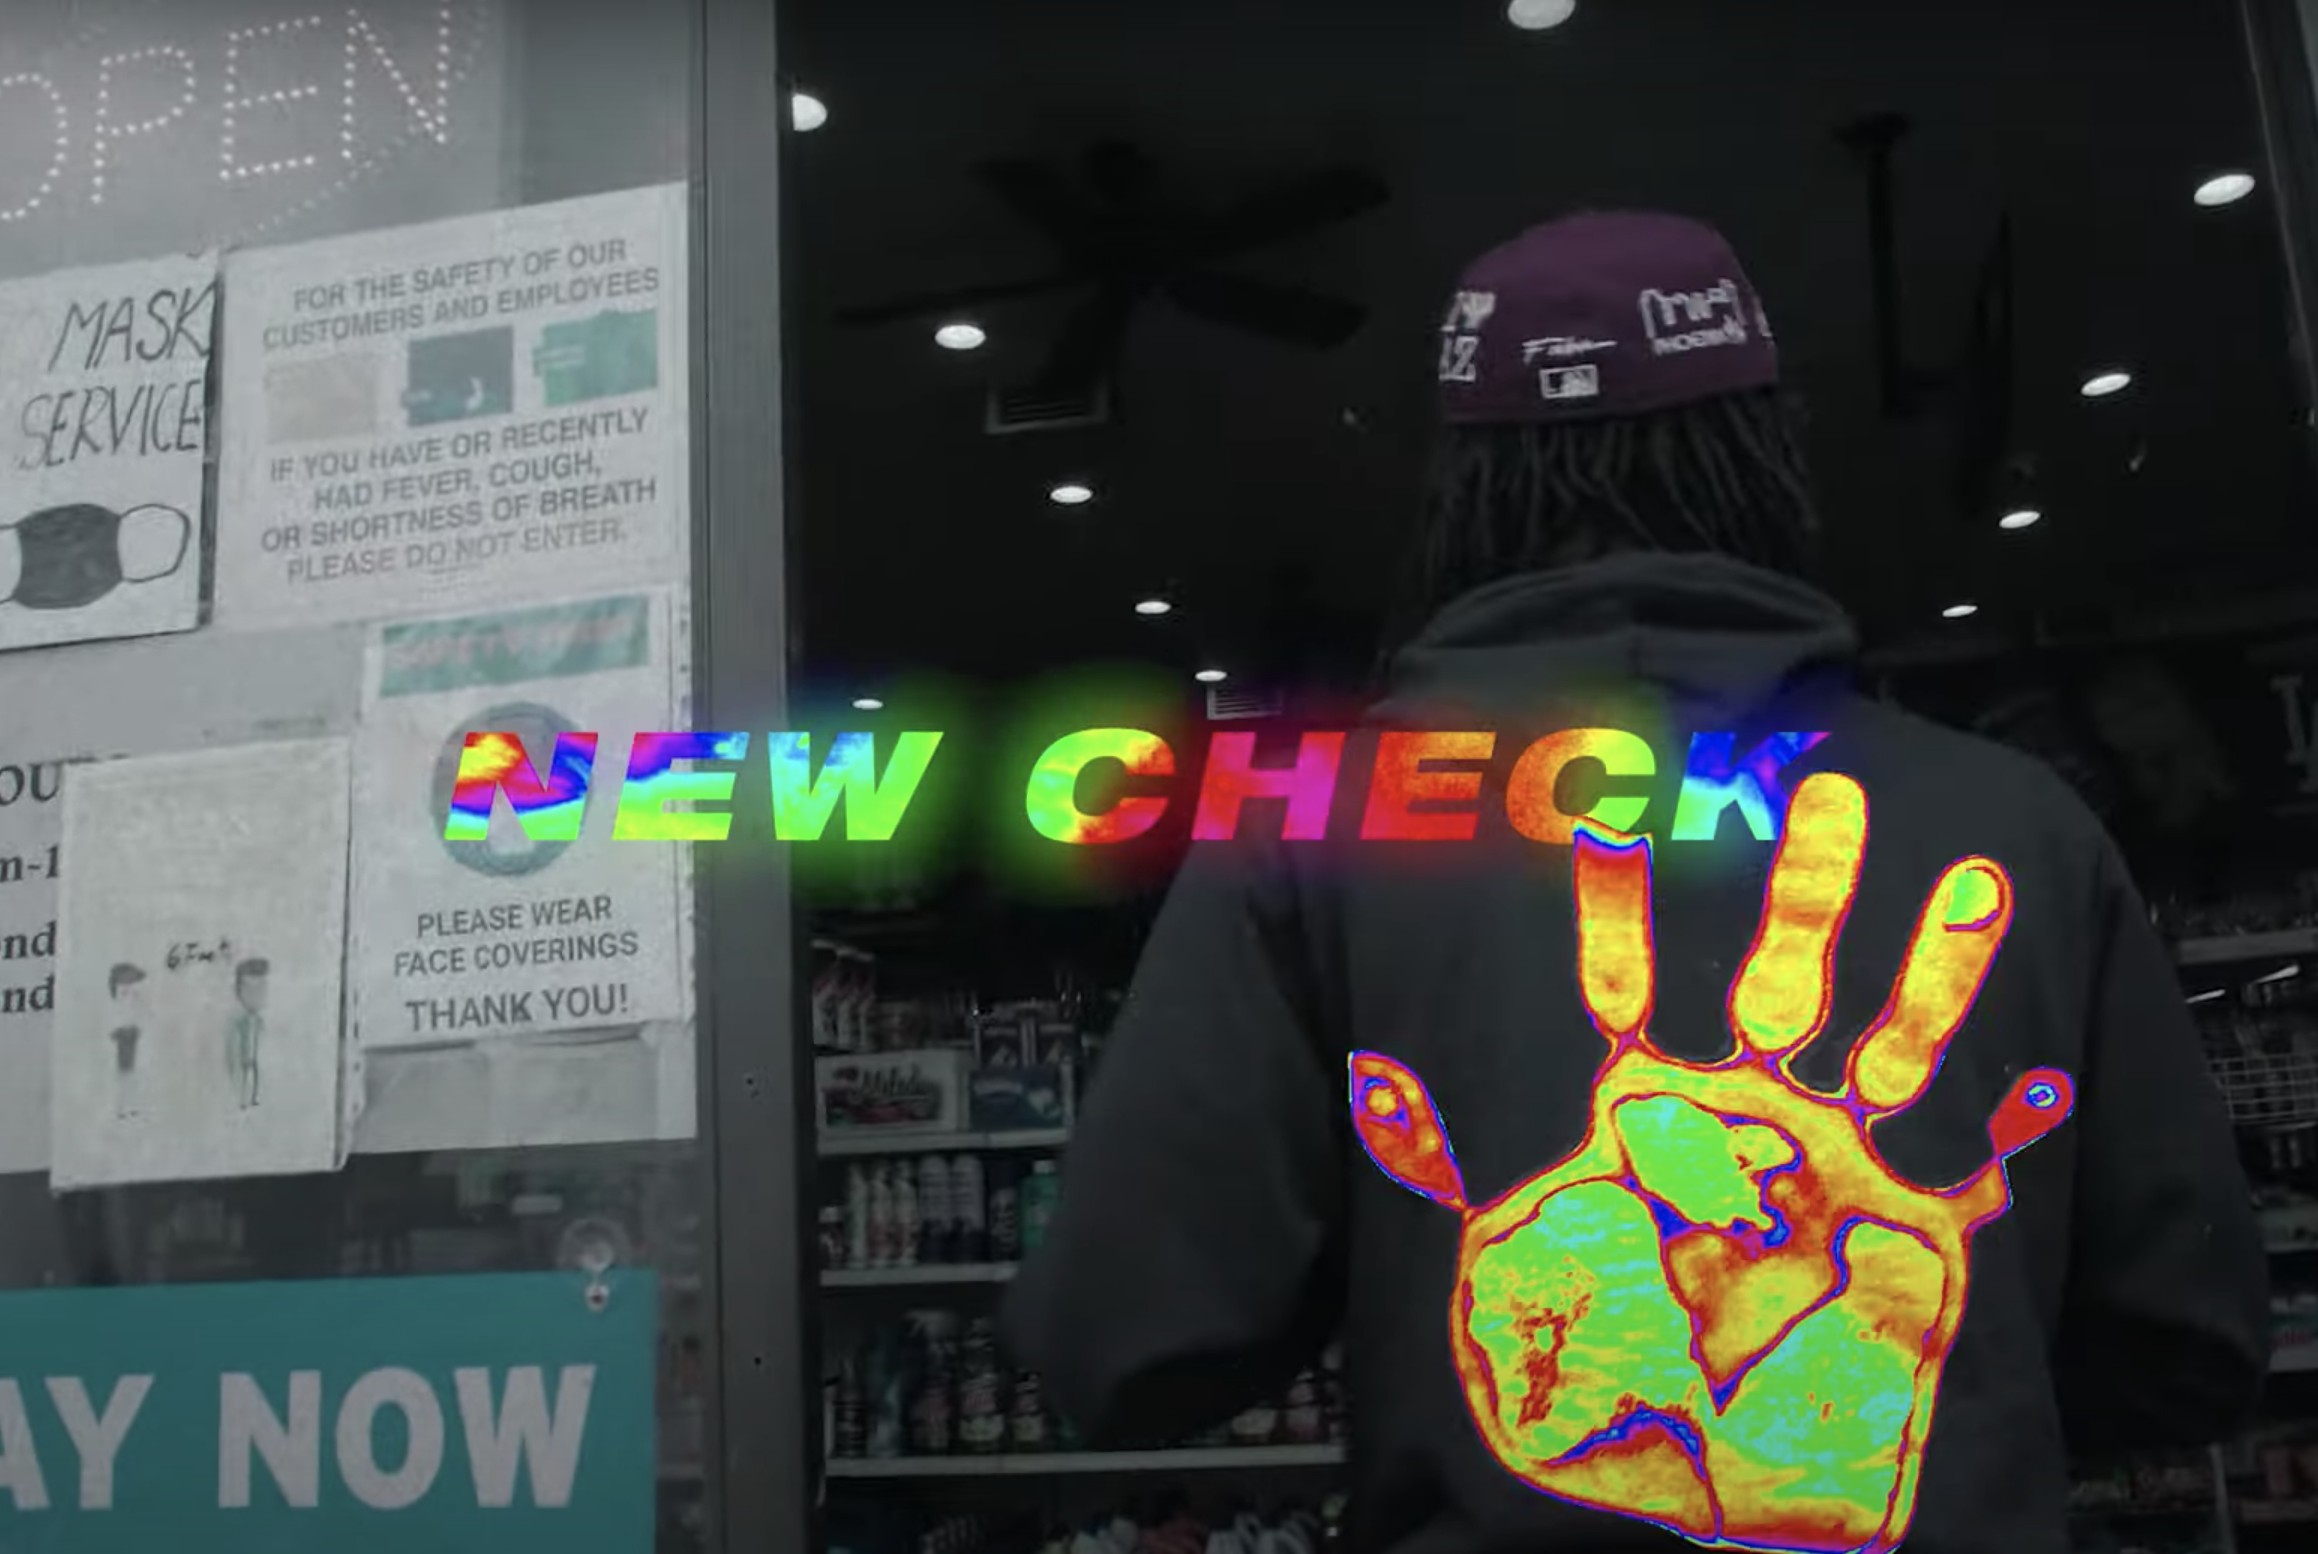 New Check – [Better Temperatures] ft. [BIGBABYGUCCI] [Austin Skinner] [30ROCK]